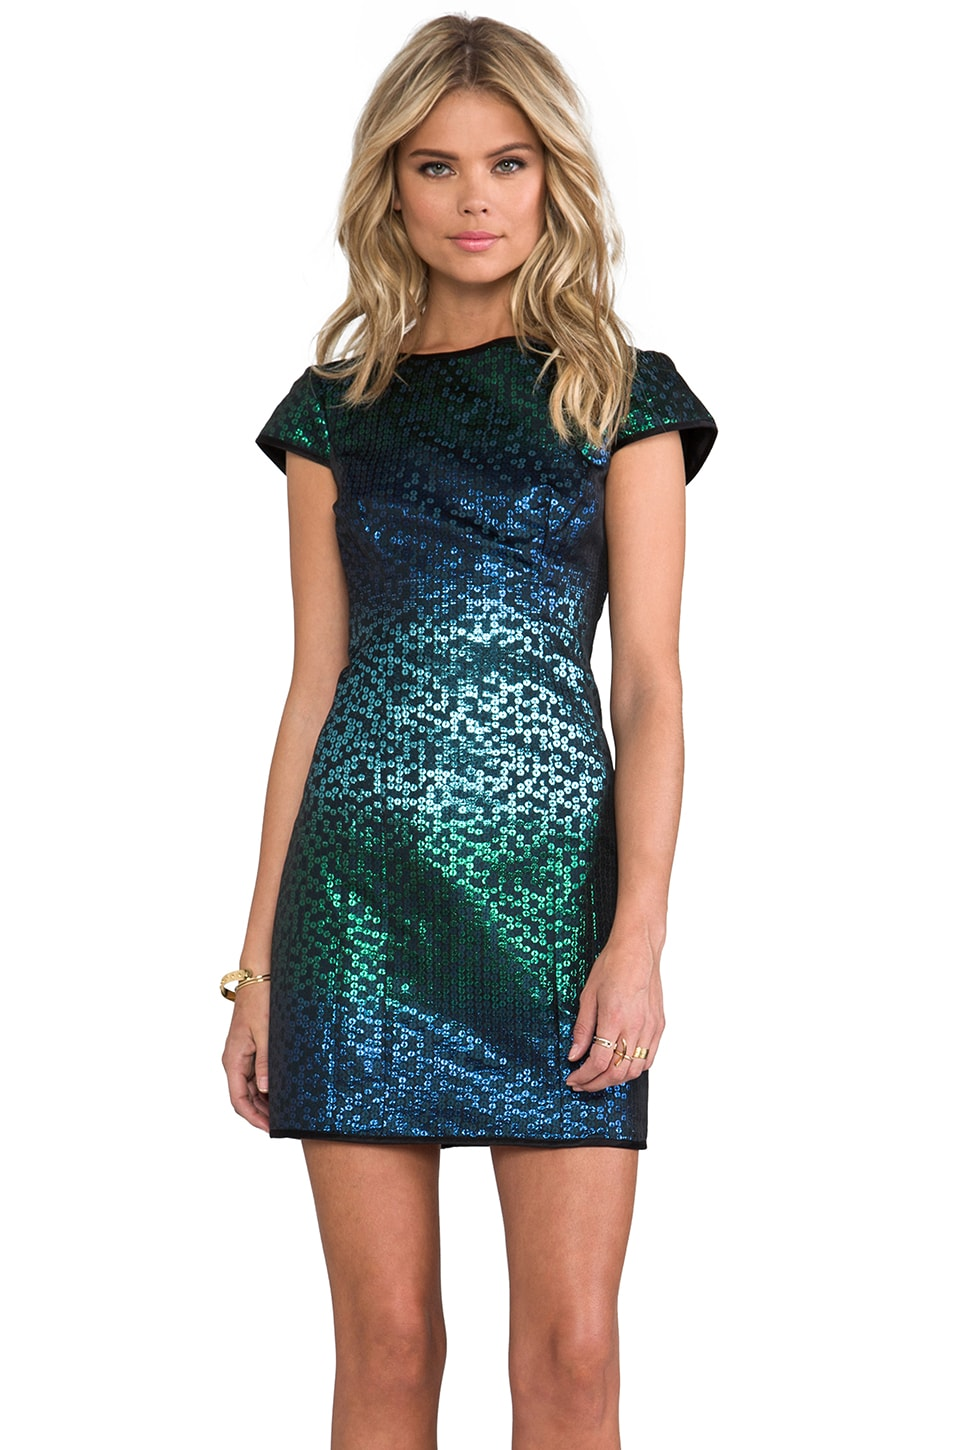 Nanette Lepore Cabaret Dress in Turquoise Mix